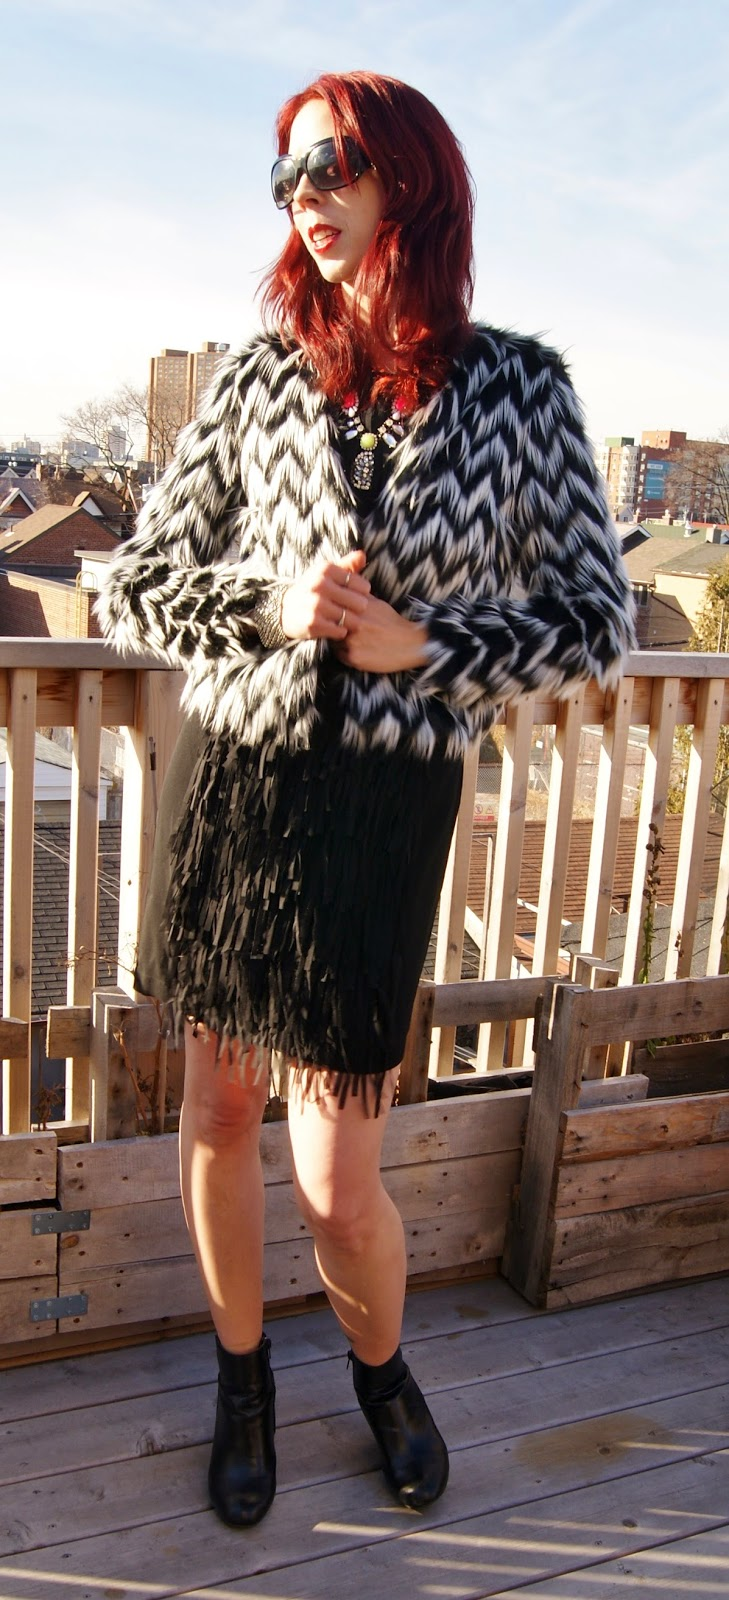 Party Ready!:  Joe Fresh Little Black Fringe Dress, H&M Faux Fur Jacket, Shop For Jayu Neon Necklace, Expression Booties from Hudson's Bay, Aldo Feather Clutch, fashion, style, New Year's Eve, Outfit, Look, OOTD, party, the purple scarf, melanie.ps, toronto, ontario, canada, sunglasses, jewlery, accessories